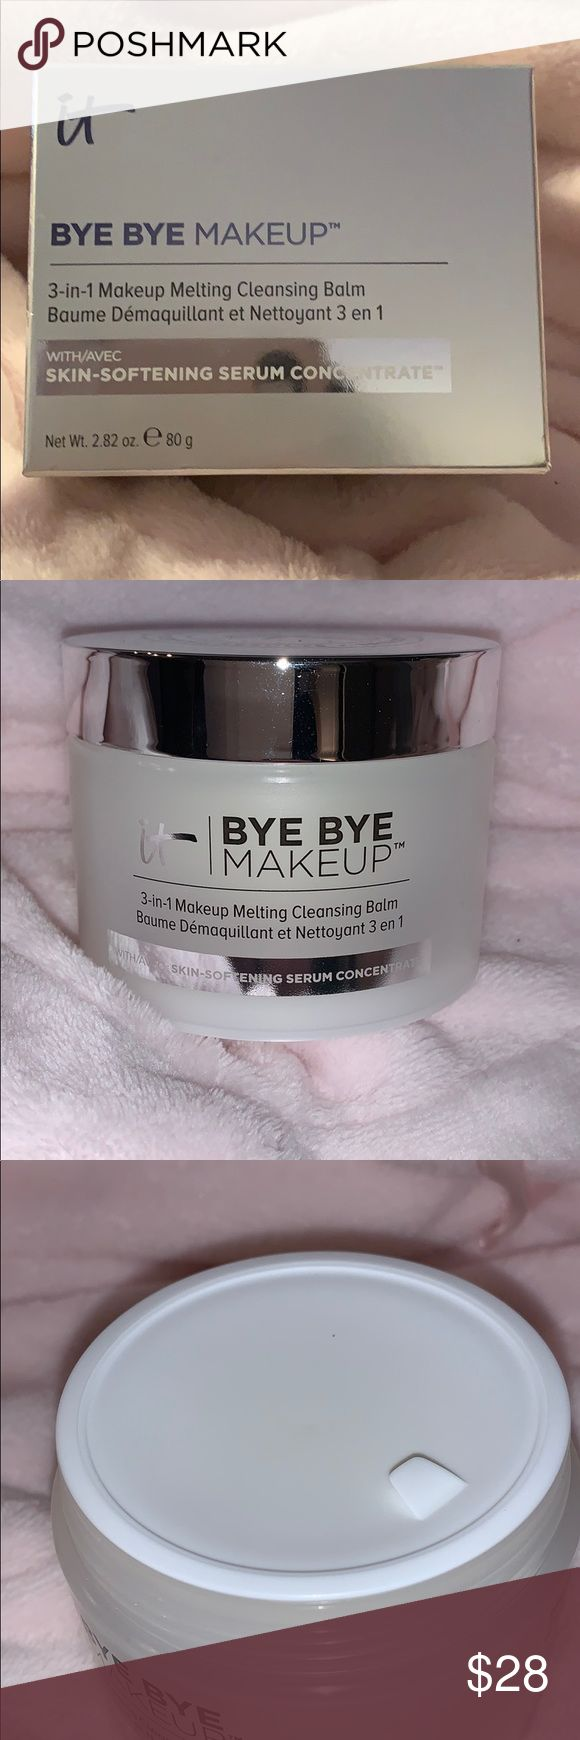 IT Cosmetics Bye Bye Makeup in 2020 Cleansing balm